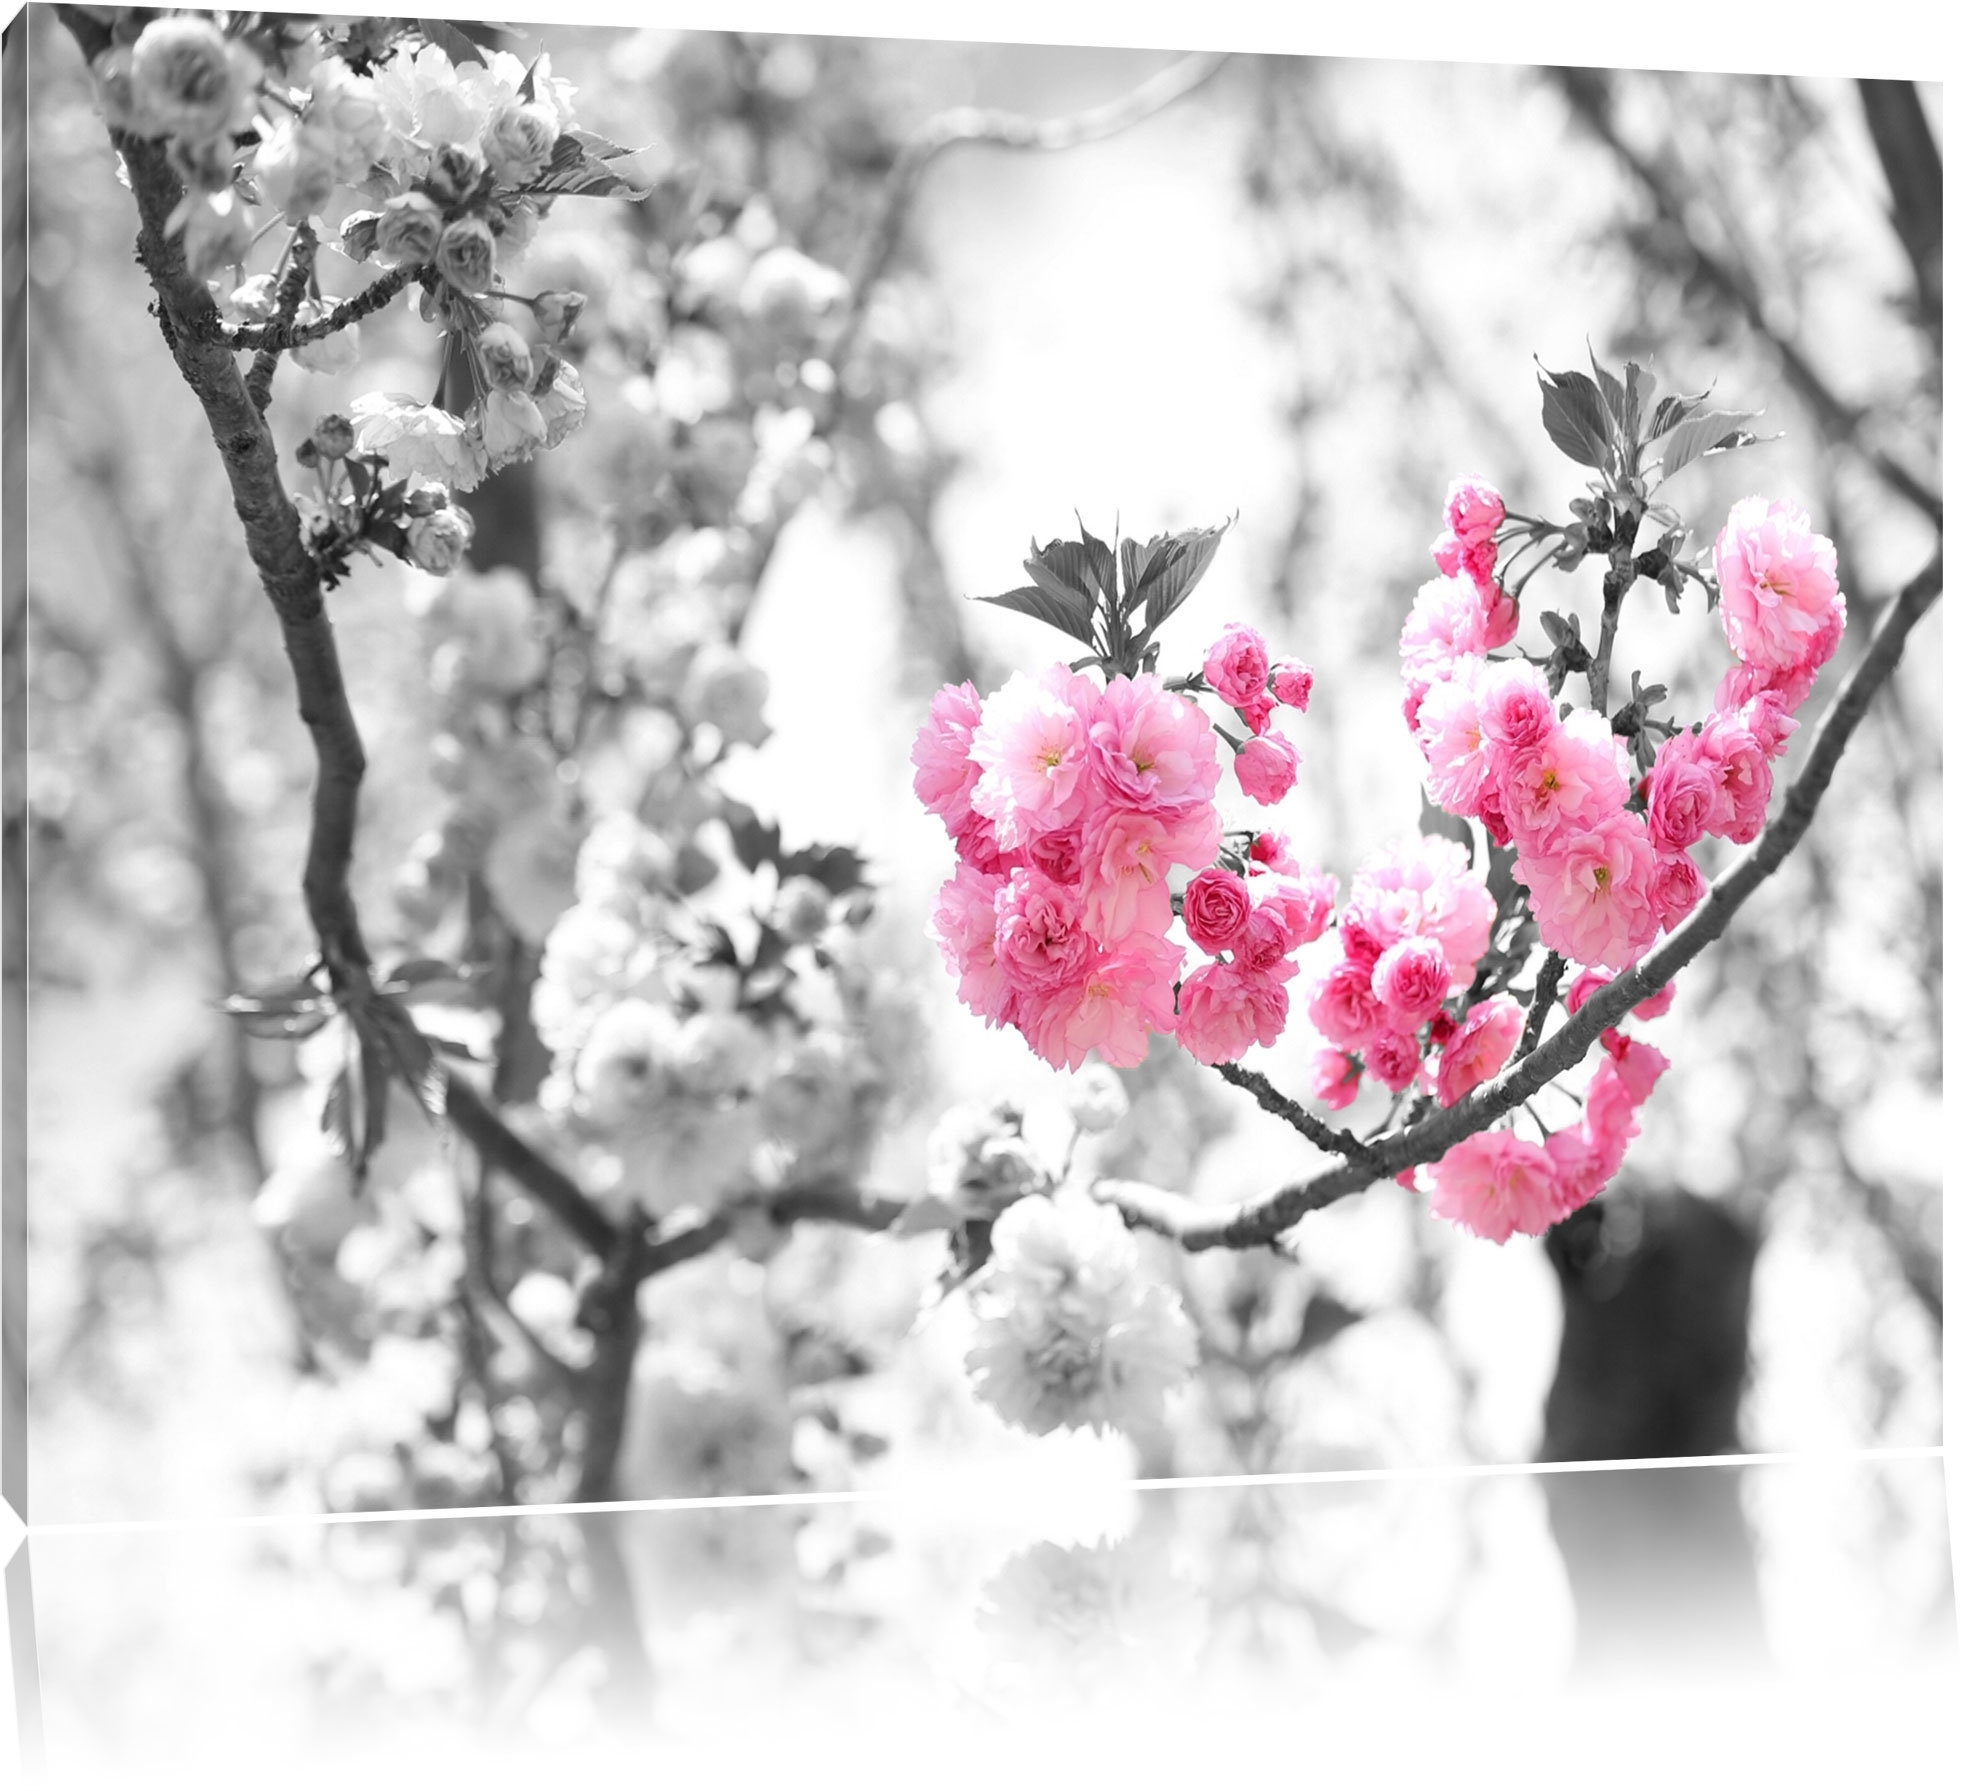 Pixxprint Beautiful Cherry Blossom Wall Art On Canvas | Wayfair.co.uk with regard to Cherry Blossom Wall Art (Image 14 of 20)